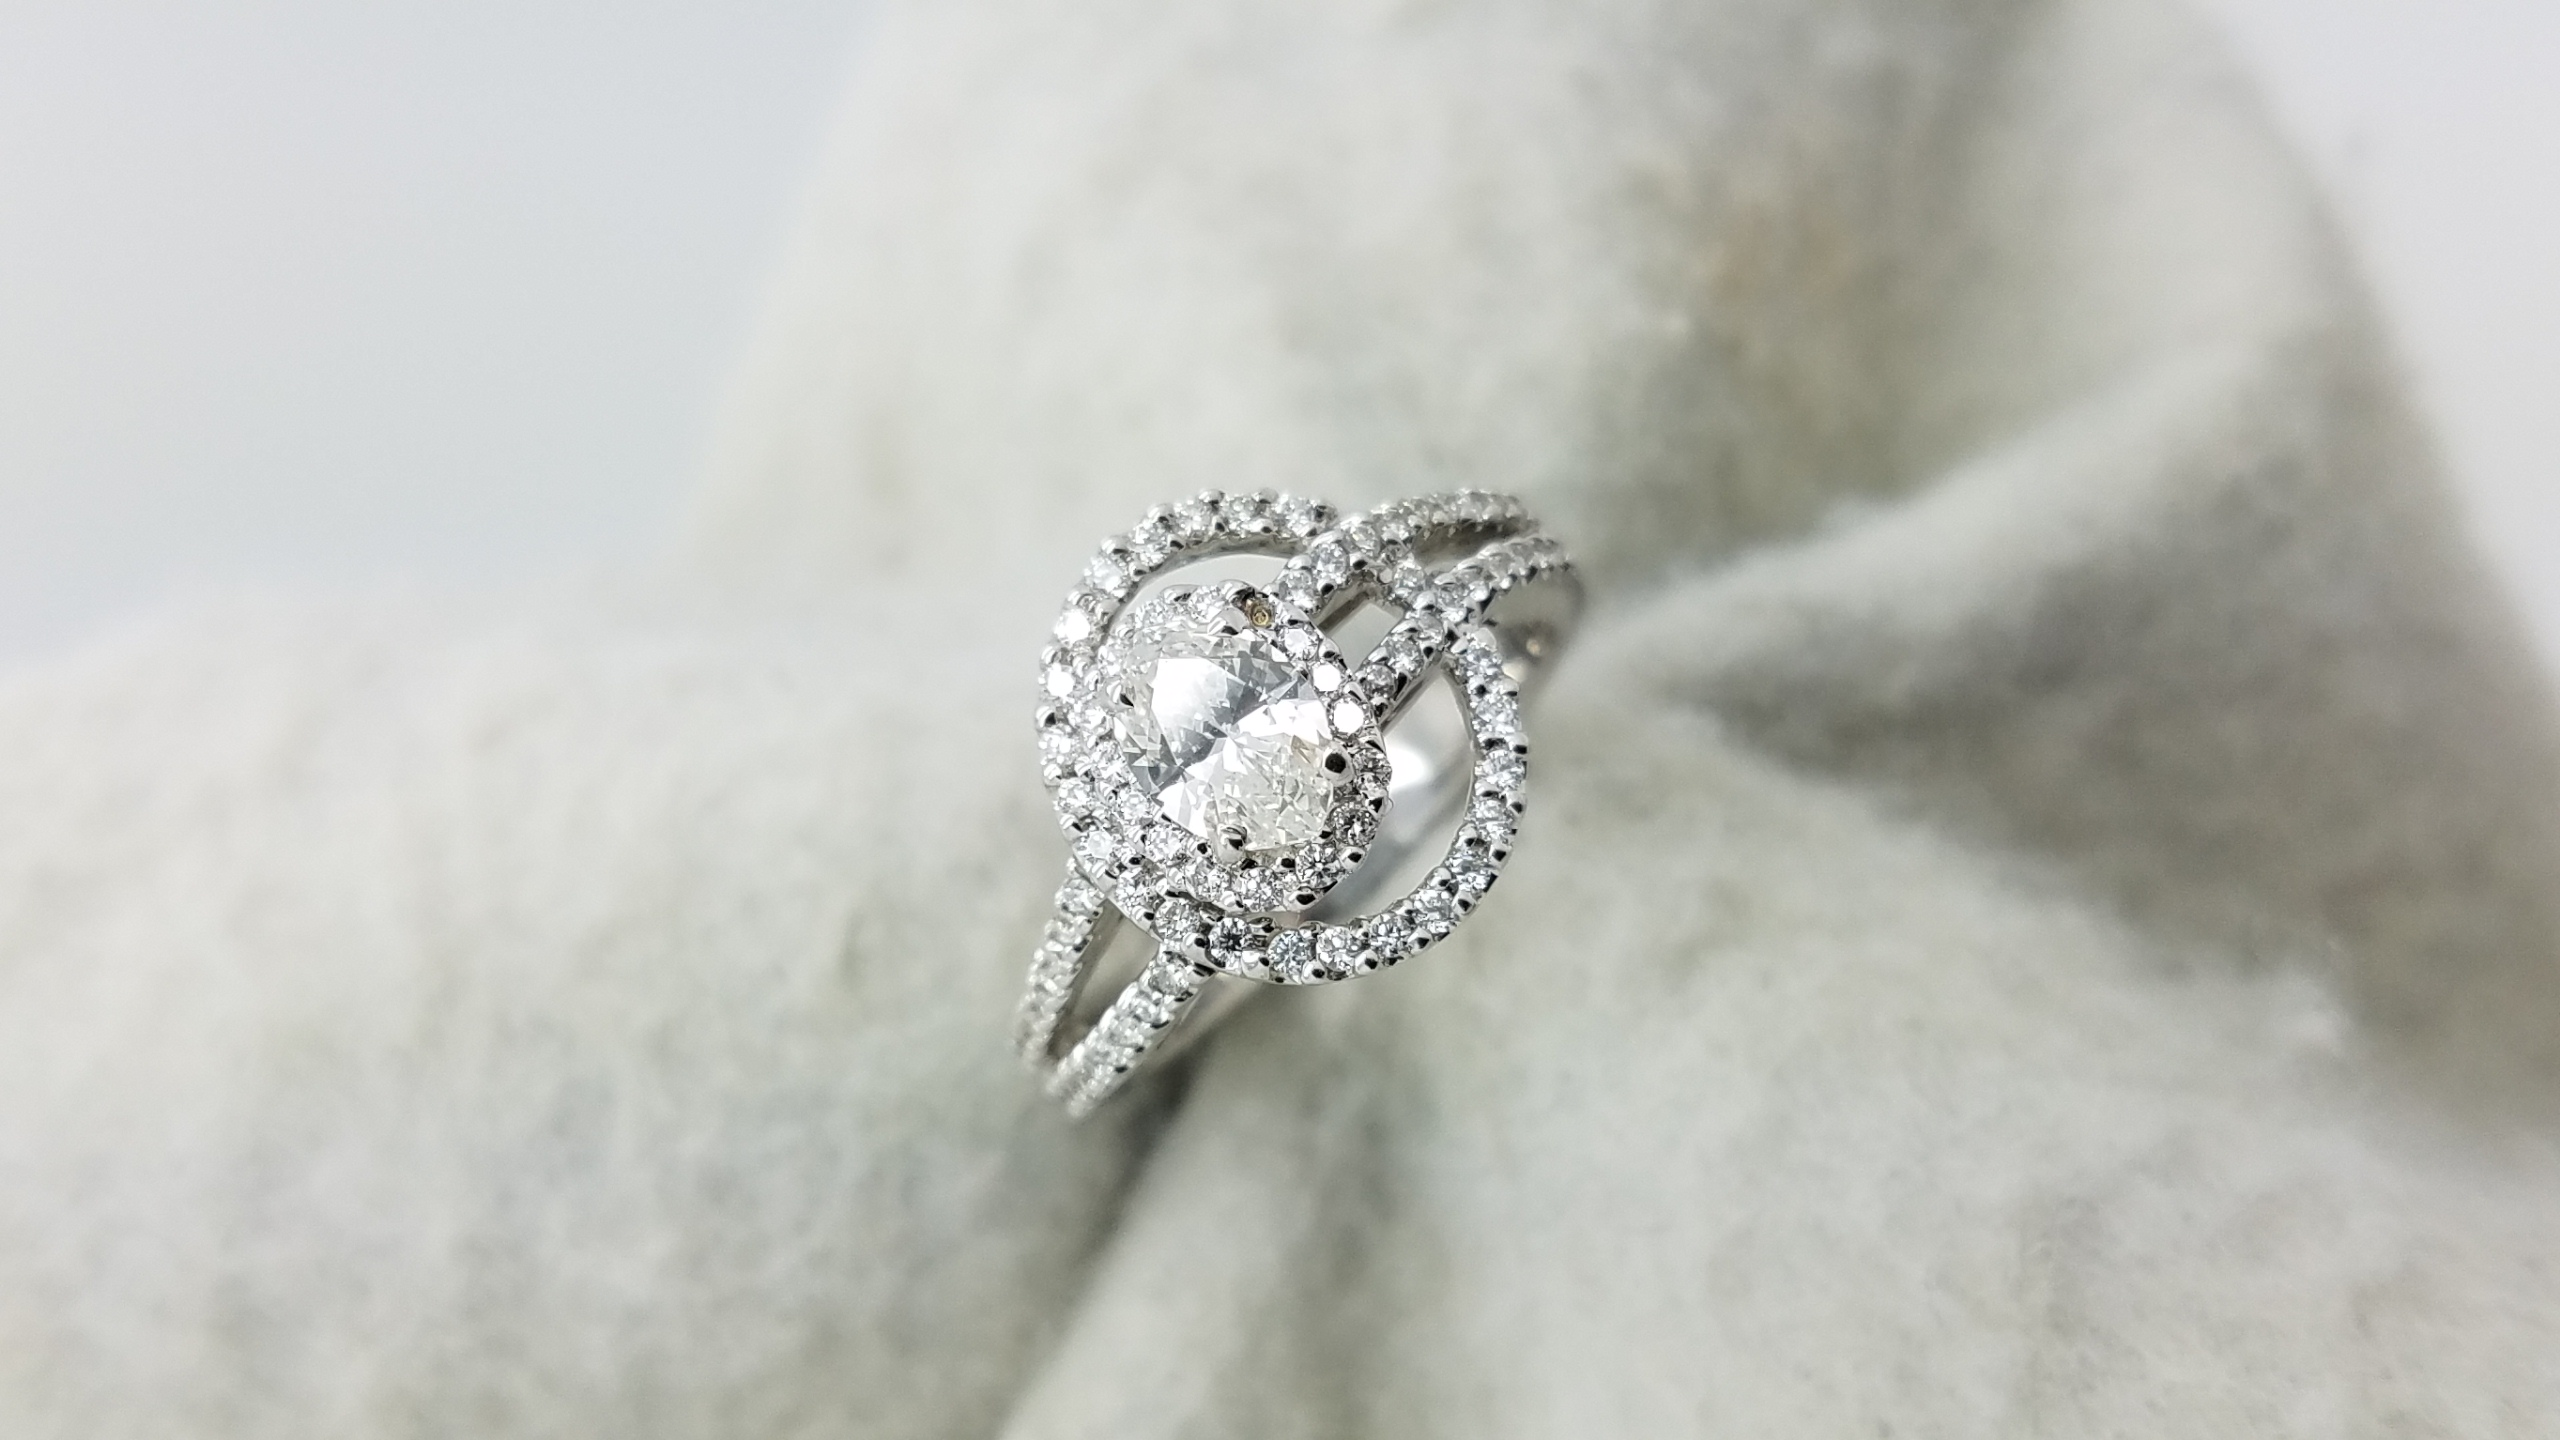 14K	White Gold	Halos and splited shank	.58,.70	ct.	OV+R	Cut		K 	SI1	4-prong	Solitaire with Accents	Engagement-Ring